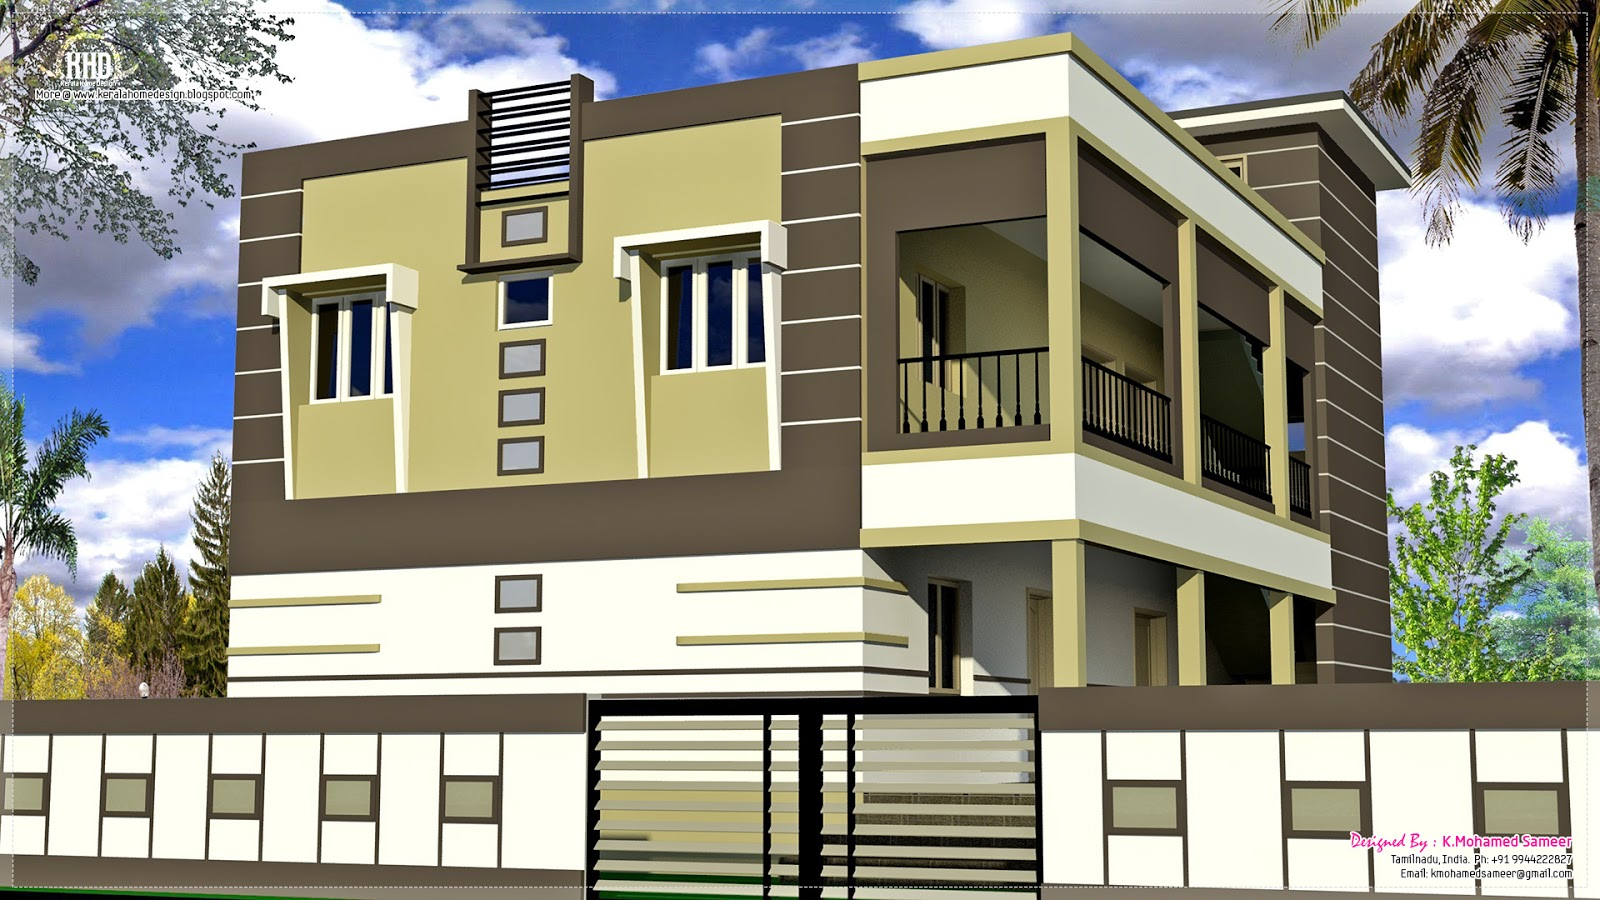 2 south indian house exterior designs kerala home design for Home outside design images